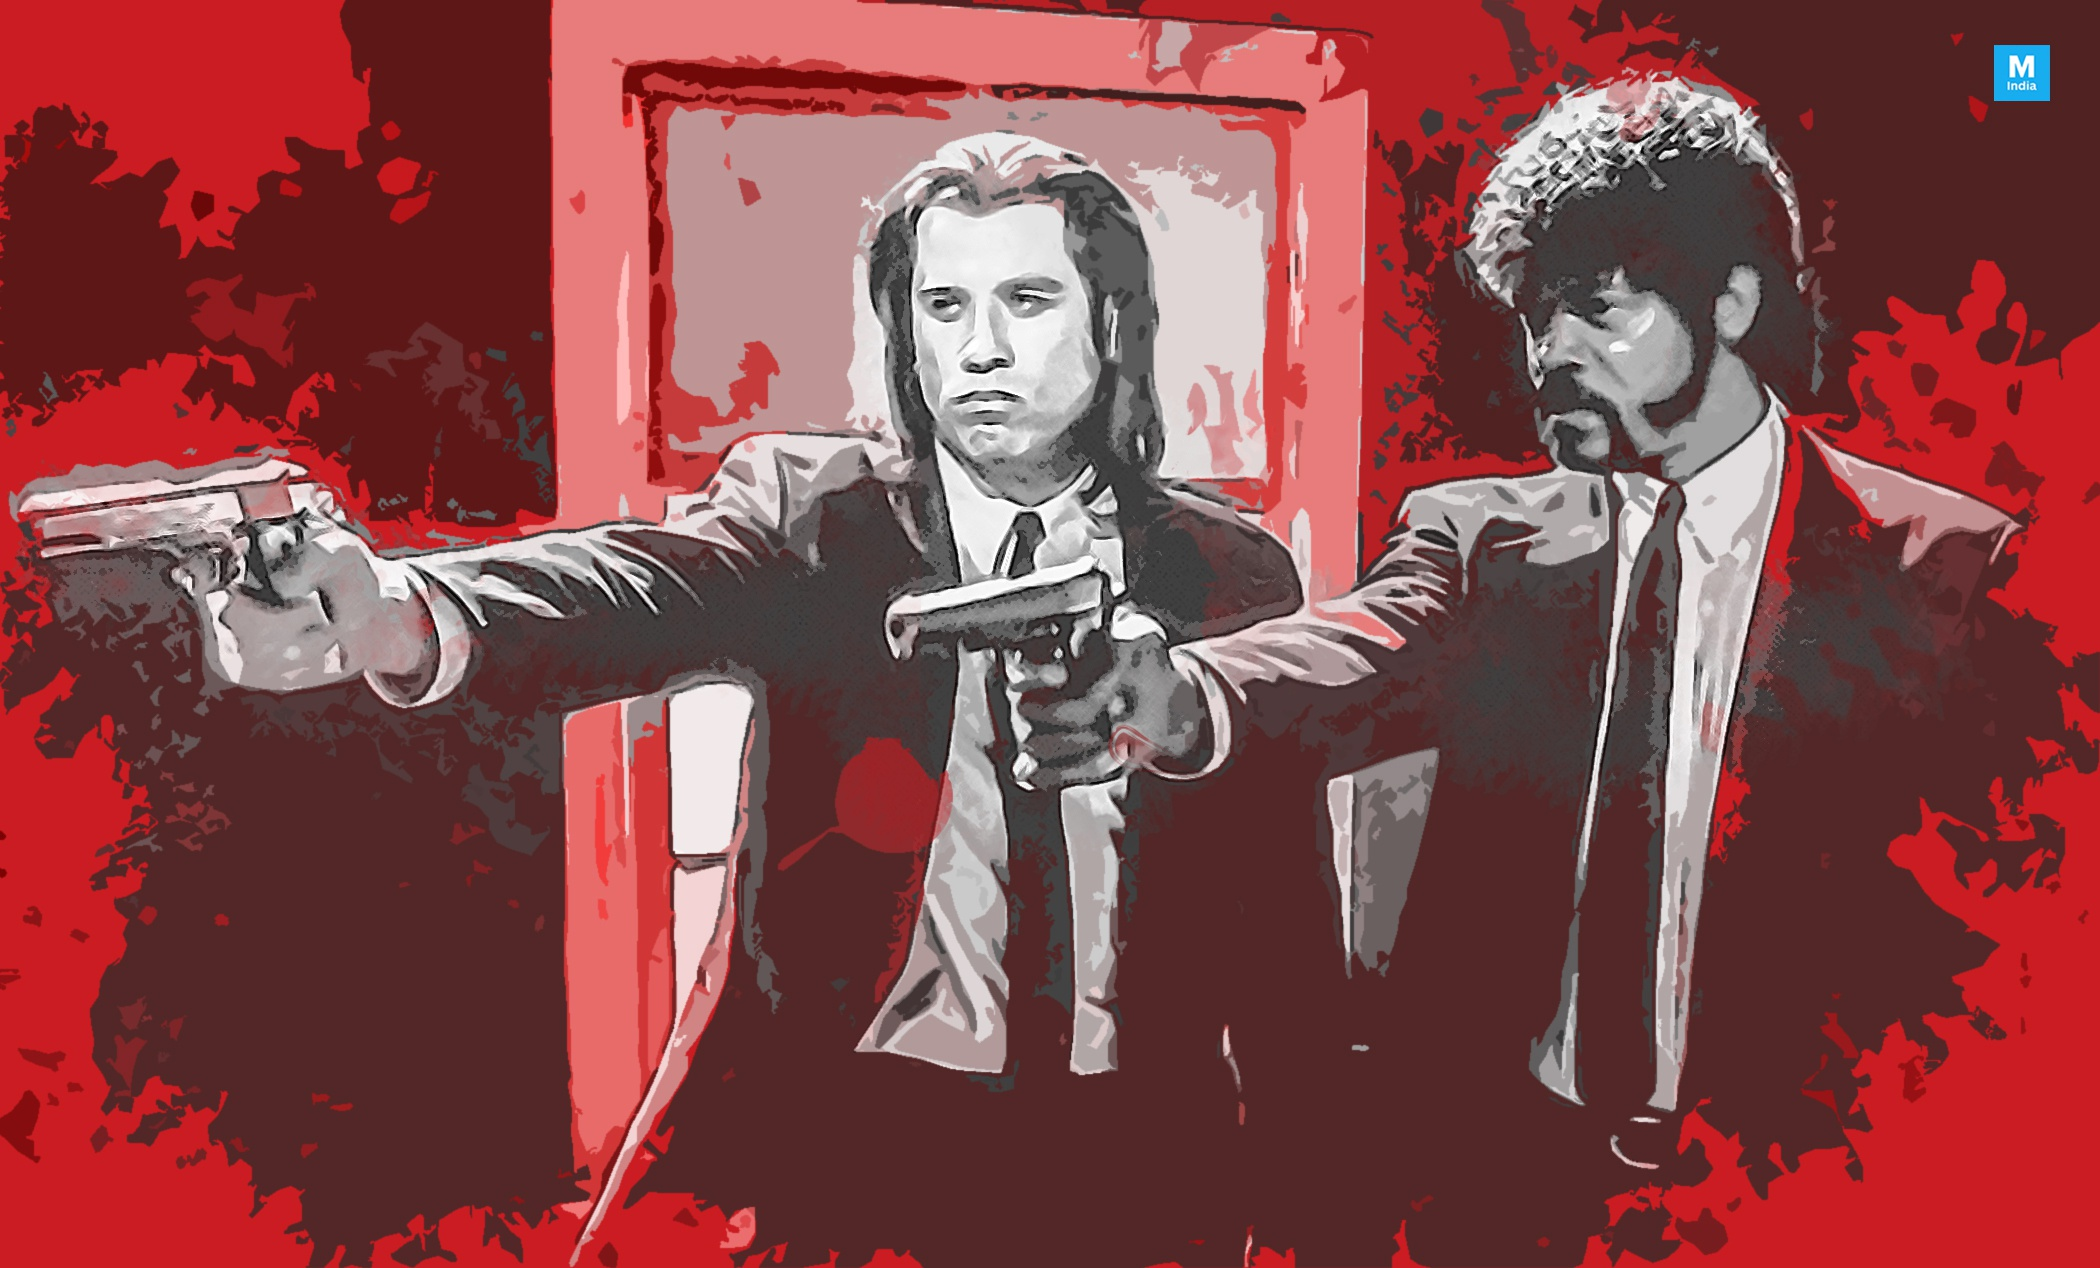 pulp-fiction-quentin-tarantino-film-zehra-gemici